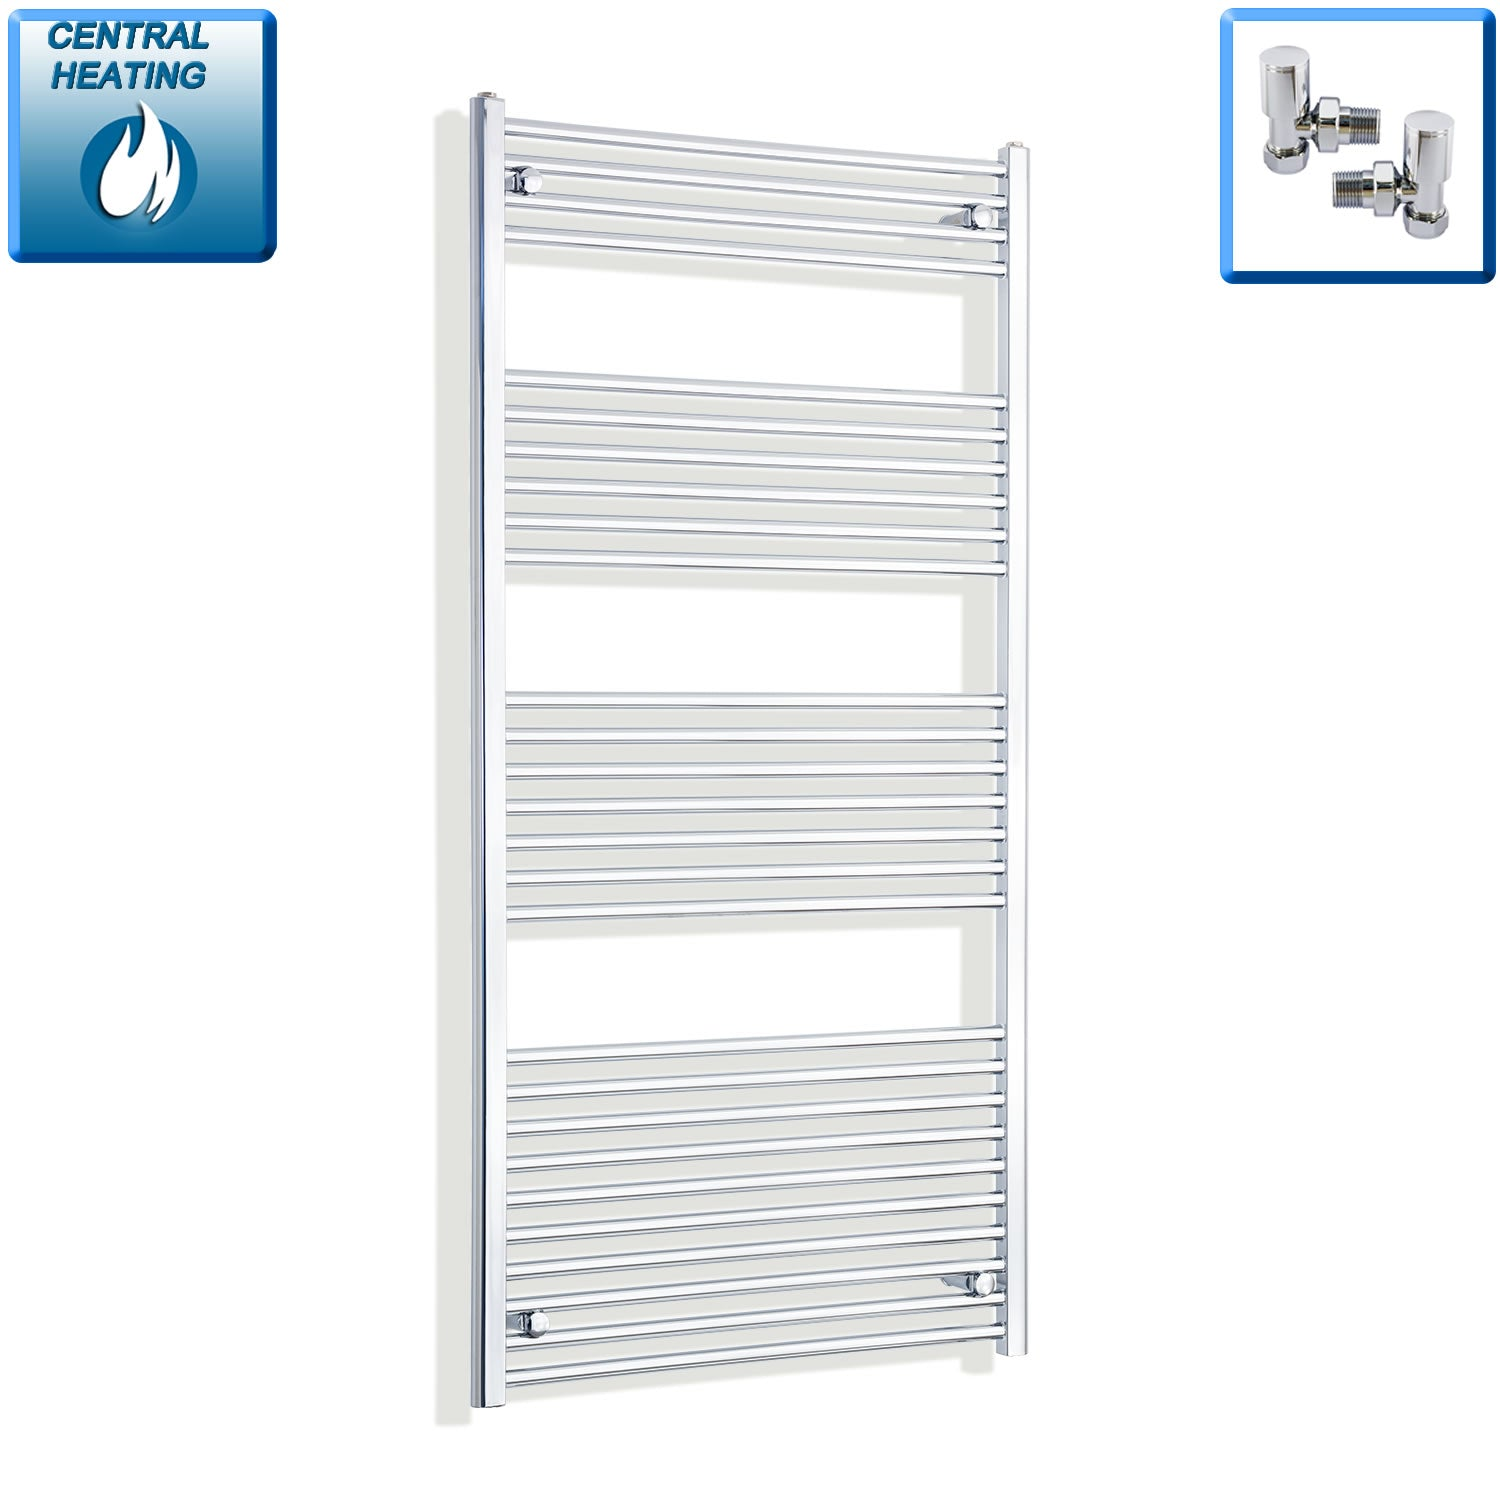 850mm Wide 1600mm High Chrome Towel Rail Radiator With Angled Valve